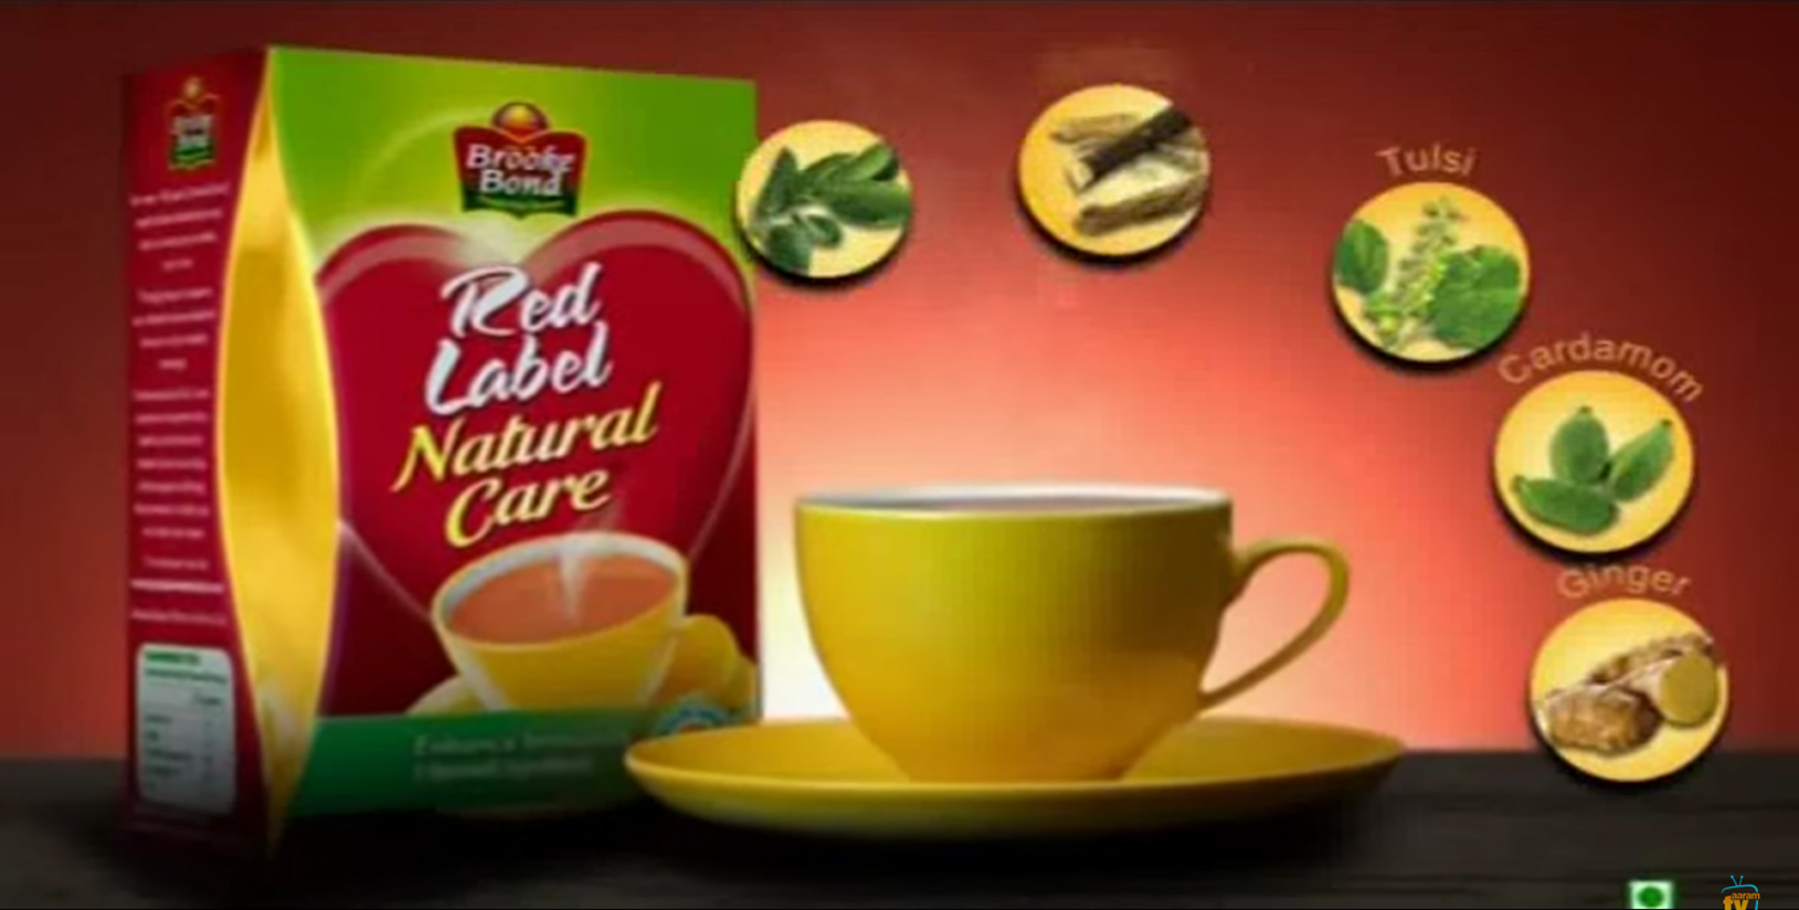 A Free Cup Of Tea With Brooke Bond Red Lebel Indian